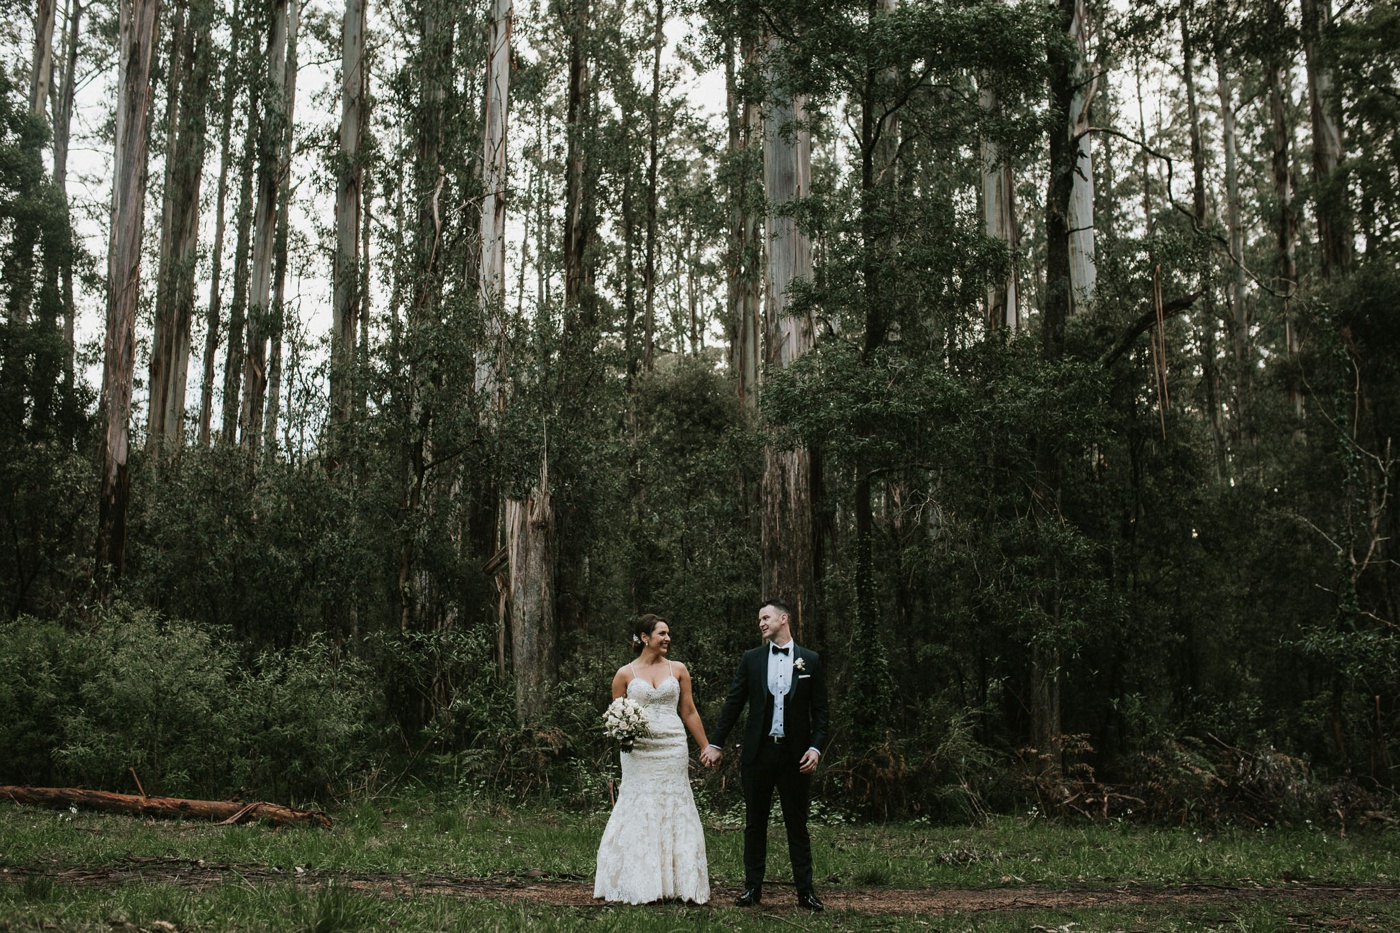 wesleybianca_dandenongs-sherbrooke-poets-lane-wedding_melbourne-quirky-fun-candid-wedding-photography_47